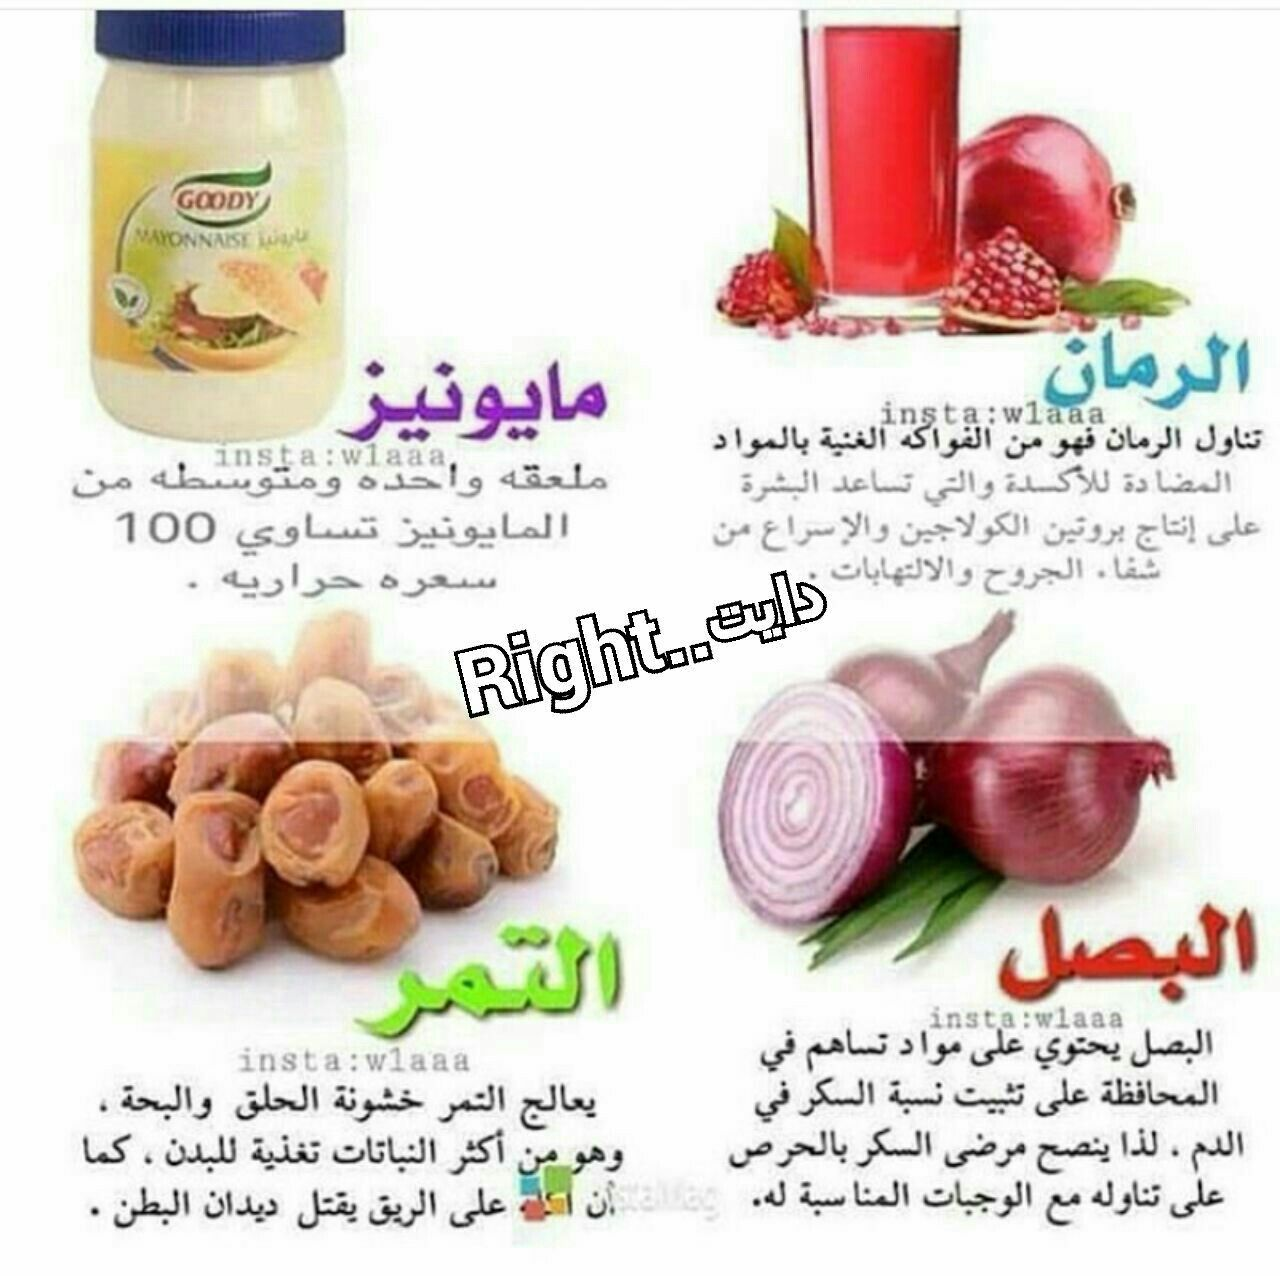 Pin By Sos Q8 On أعشاب وعلاجات Health Facts Food Health Fitness Nutrition Health And Nutrition